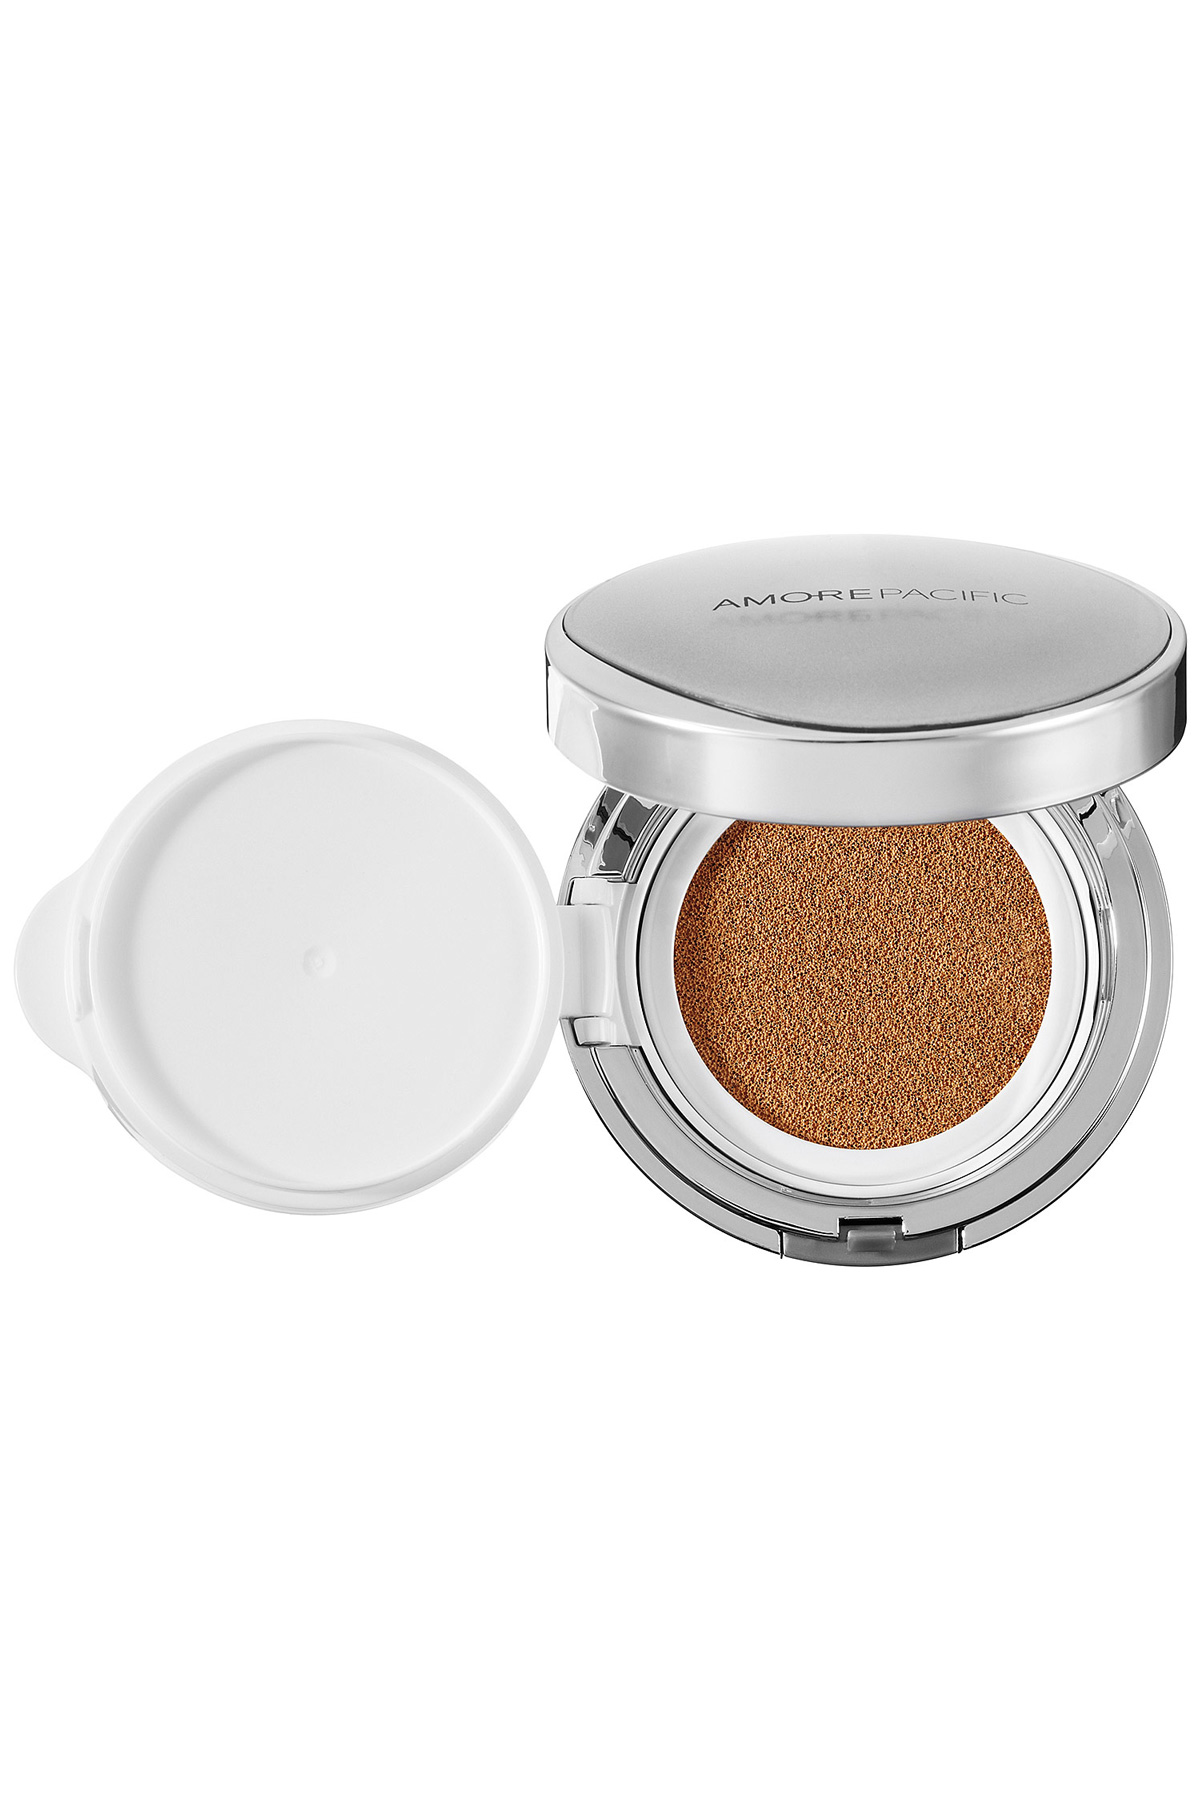 AmorePacific Color Control Cushion Compact SPF 50+